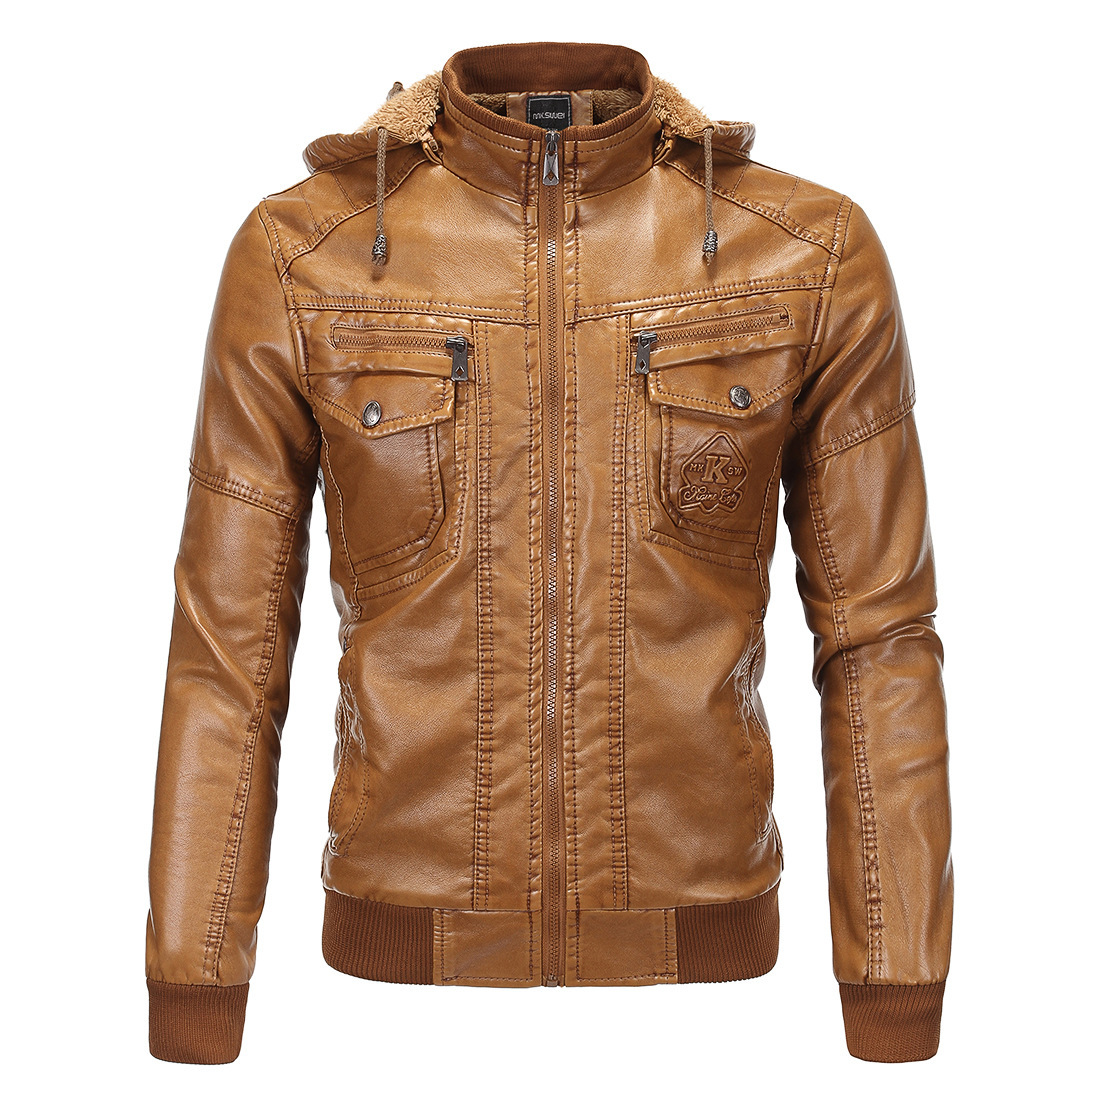 High Quality Leather Jacket Hoodie-Buy Cheap Leather Jacket Hoodie ...